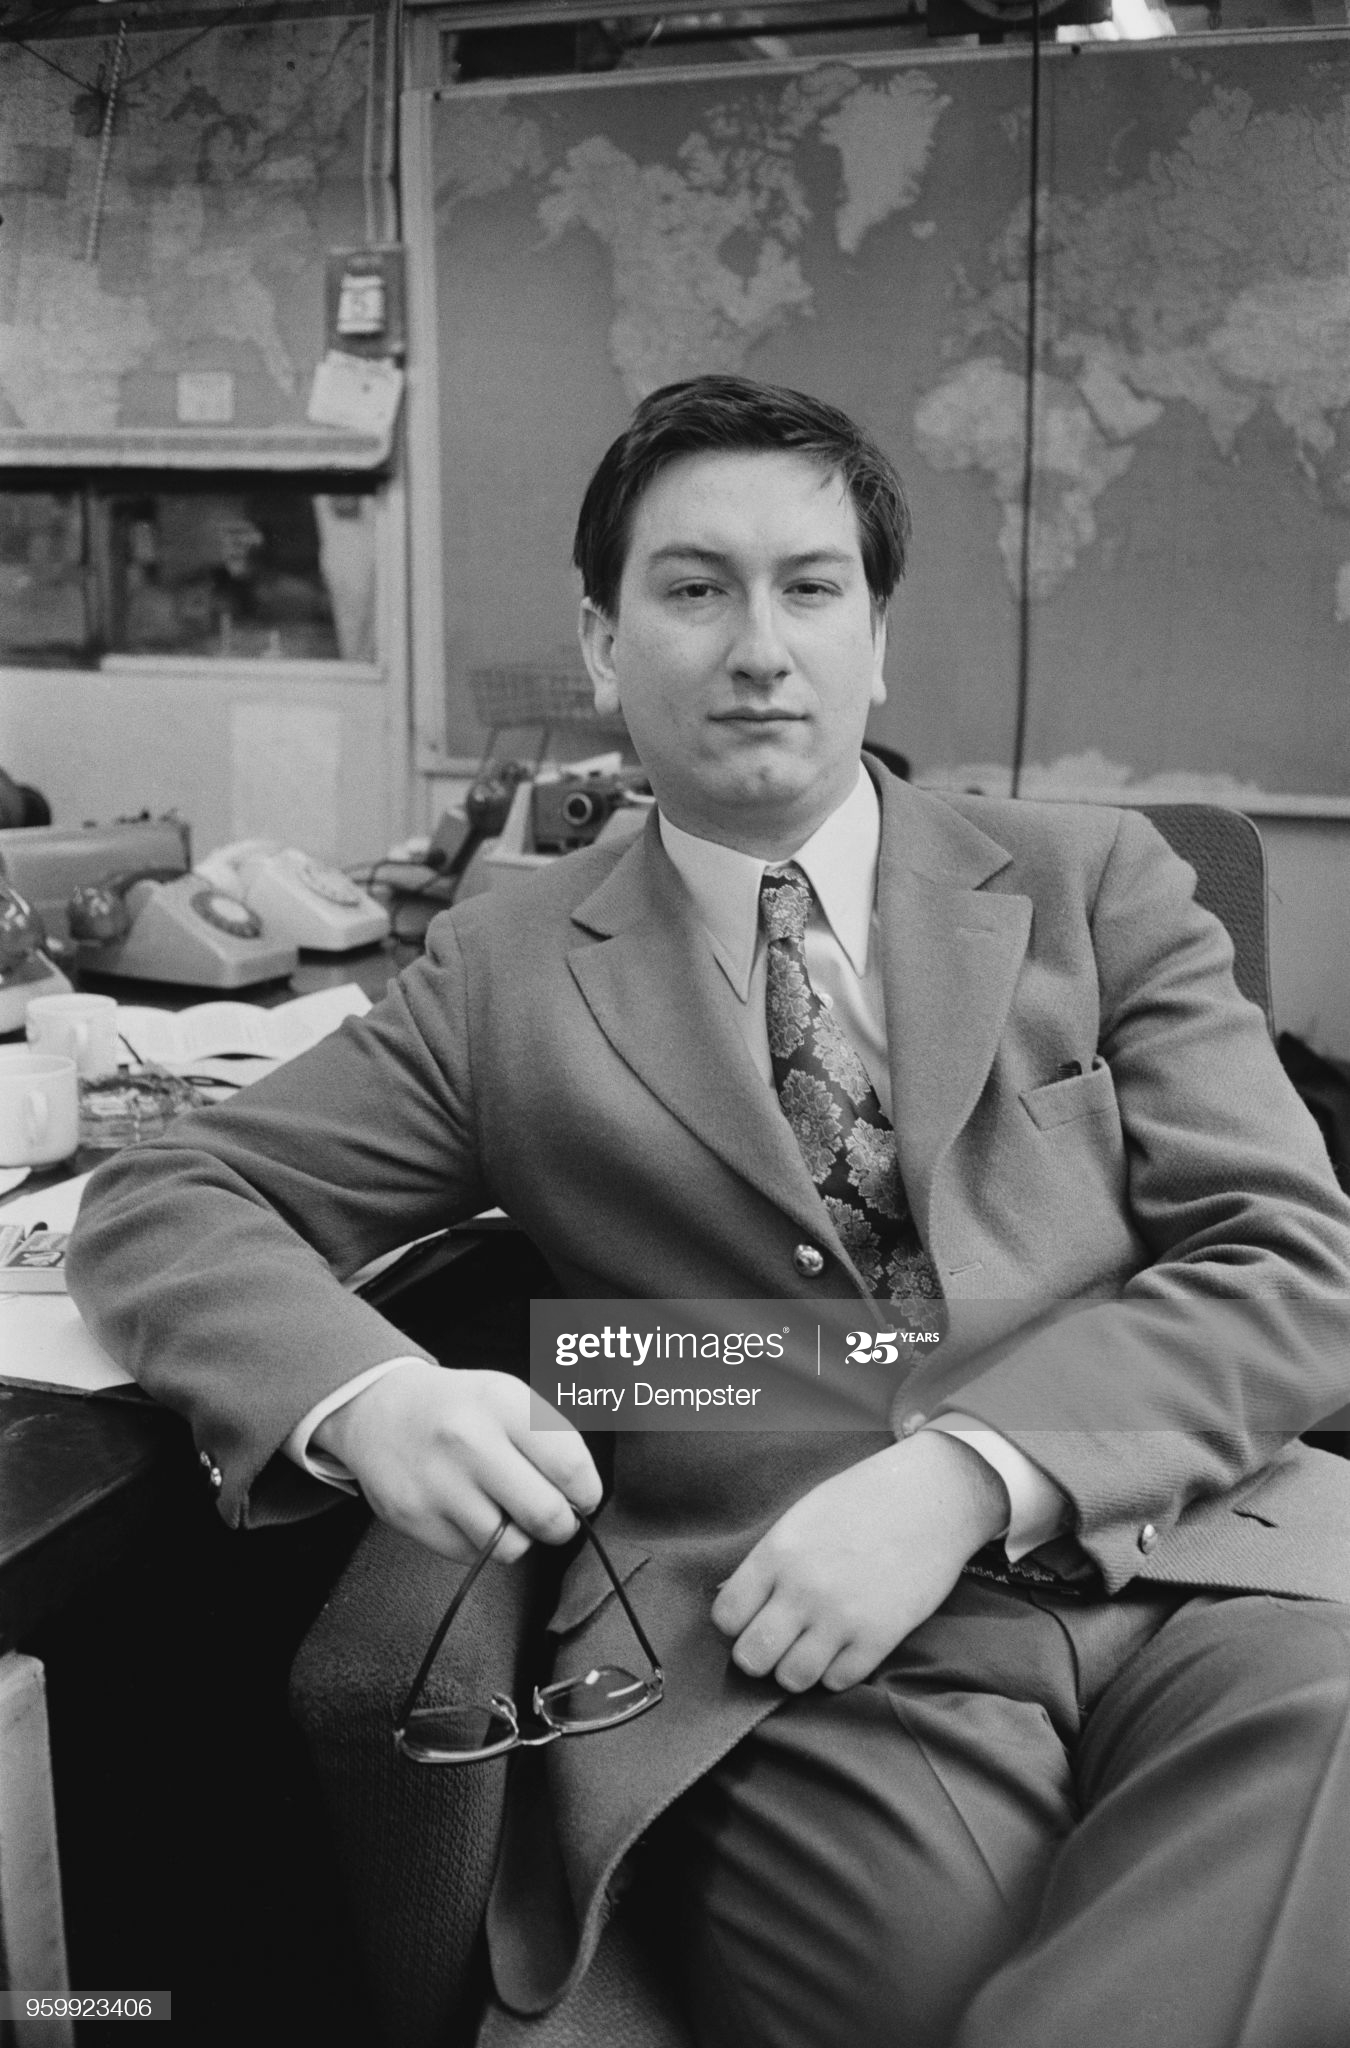 English chess player Raymond Keene, winner of the 1971 British Chess Championship, posed in London on 6th June 1972. Raymond Keene has been awarded the chess title International Master. (Photo by Harry Dempster/Daily Express/Hulton Archive/Getty Images)